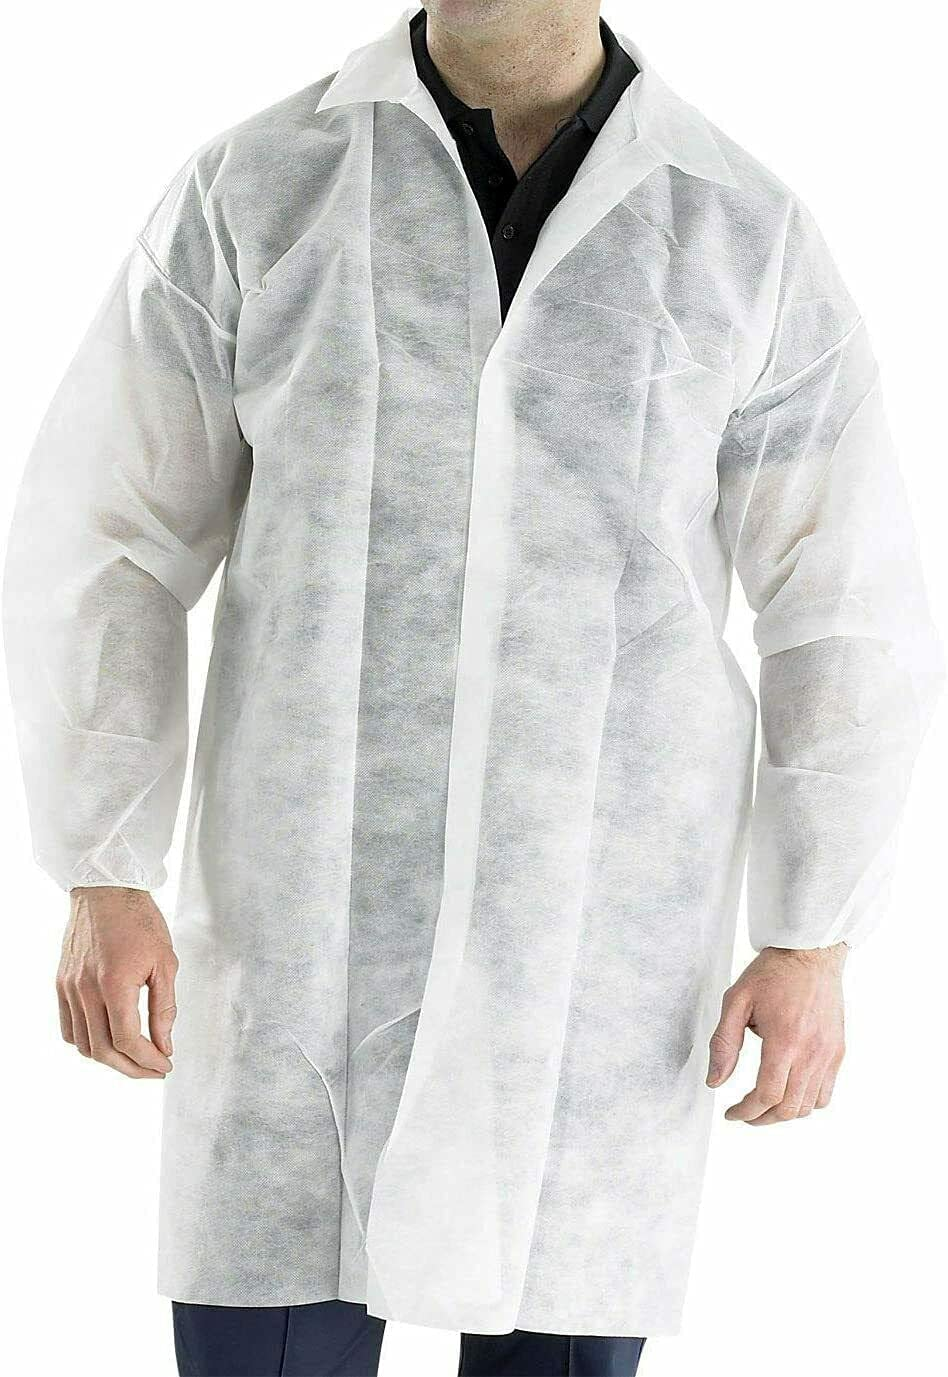 MEDICAL NATION Case of 30 Polypropyl White Disposable Lab Coats Max 90% OFF Super sale